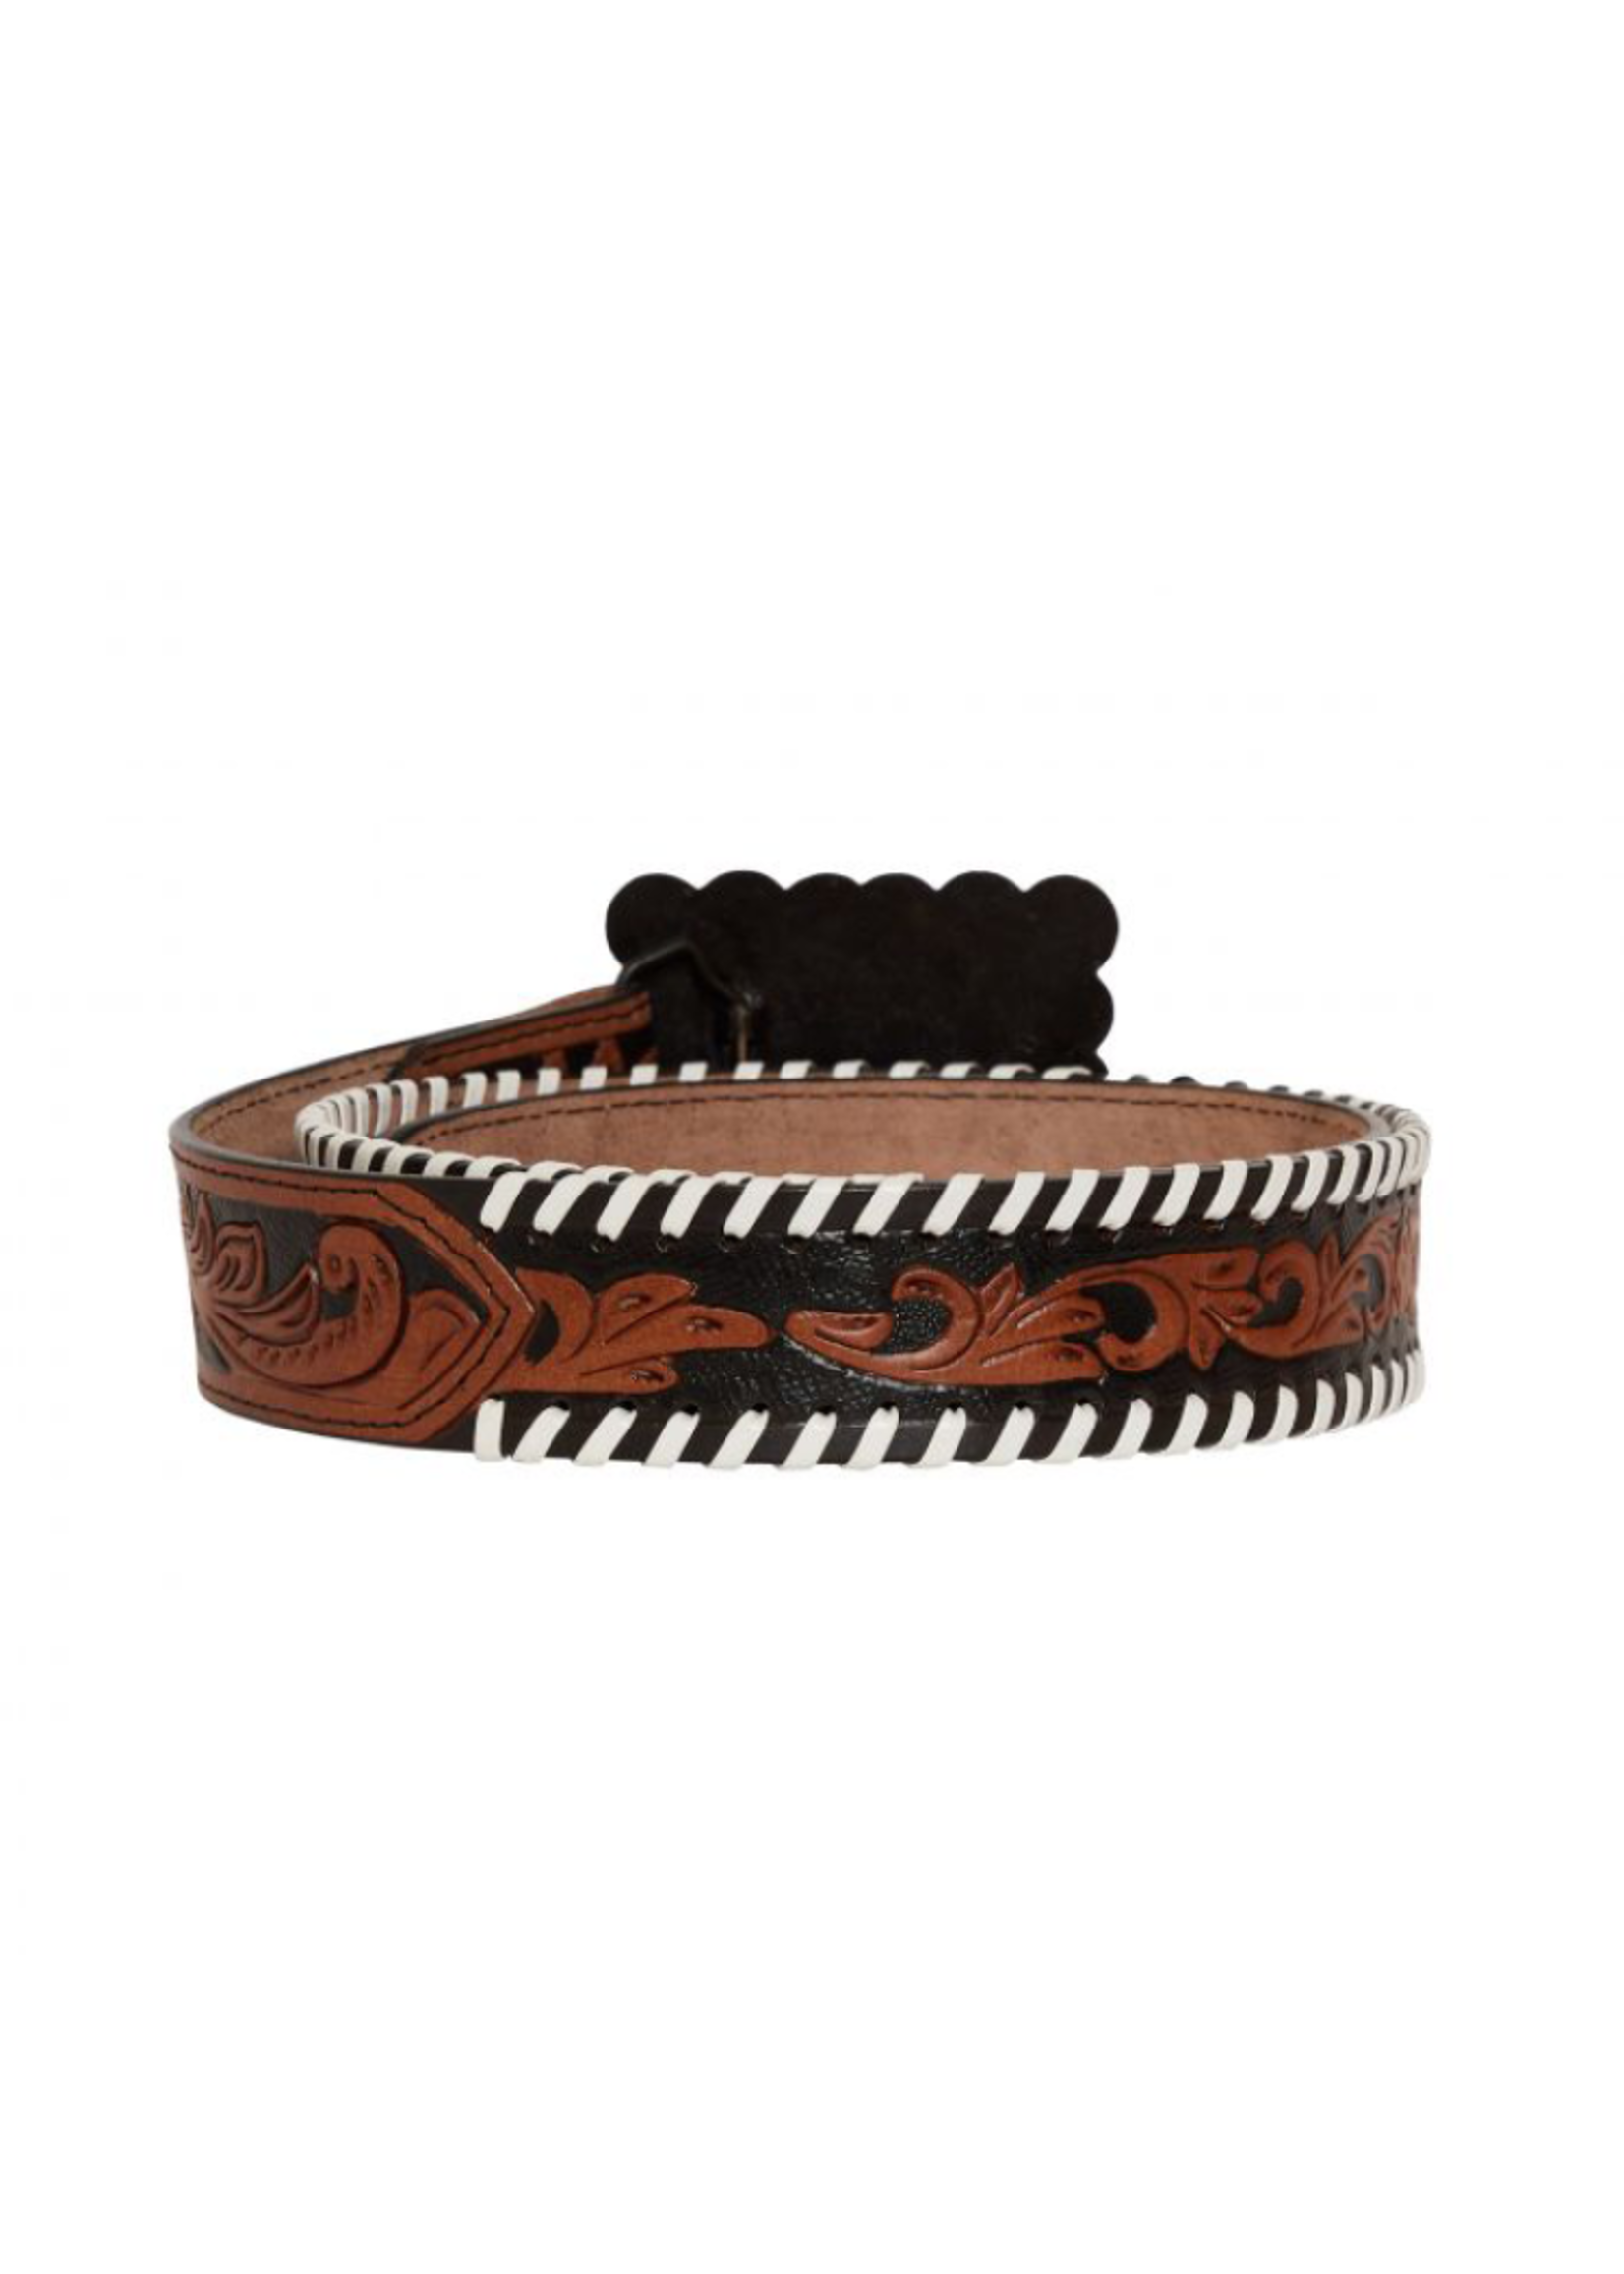 Myra Grave Brown Hand-Tooled Leather Belt